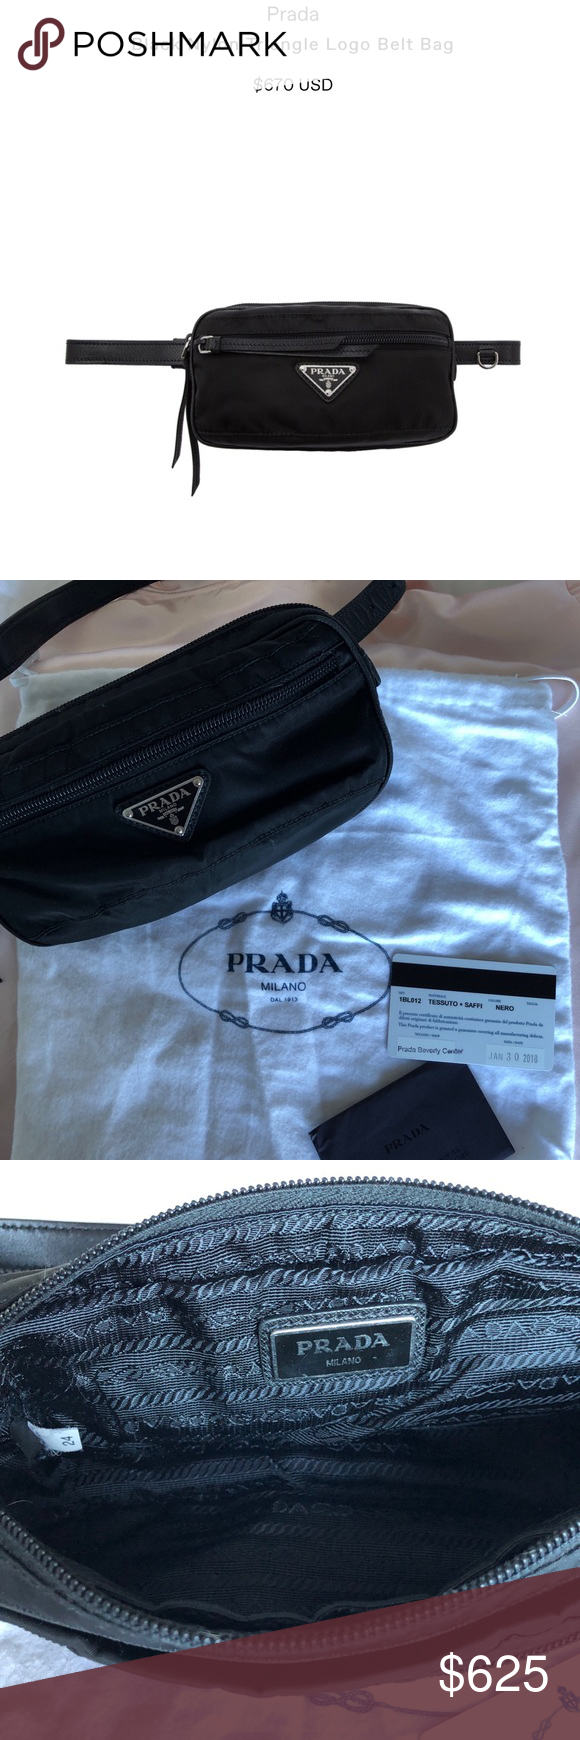 2b2ee09874902 Prada black triangle logo belt bag 🖤 Purchased at the Prada store in  Beverly Center.